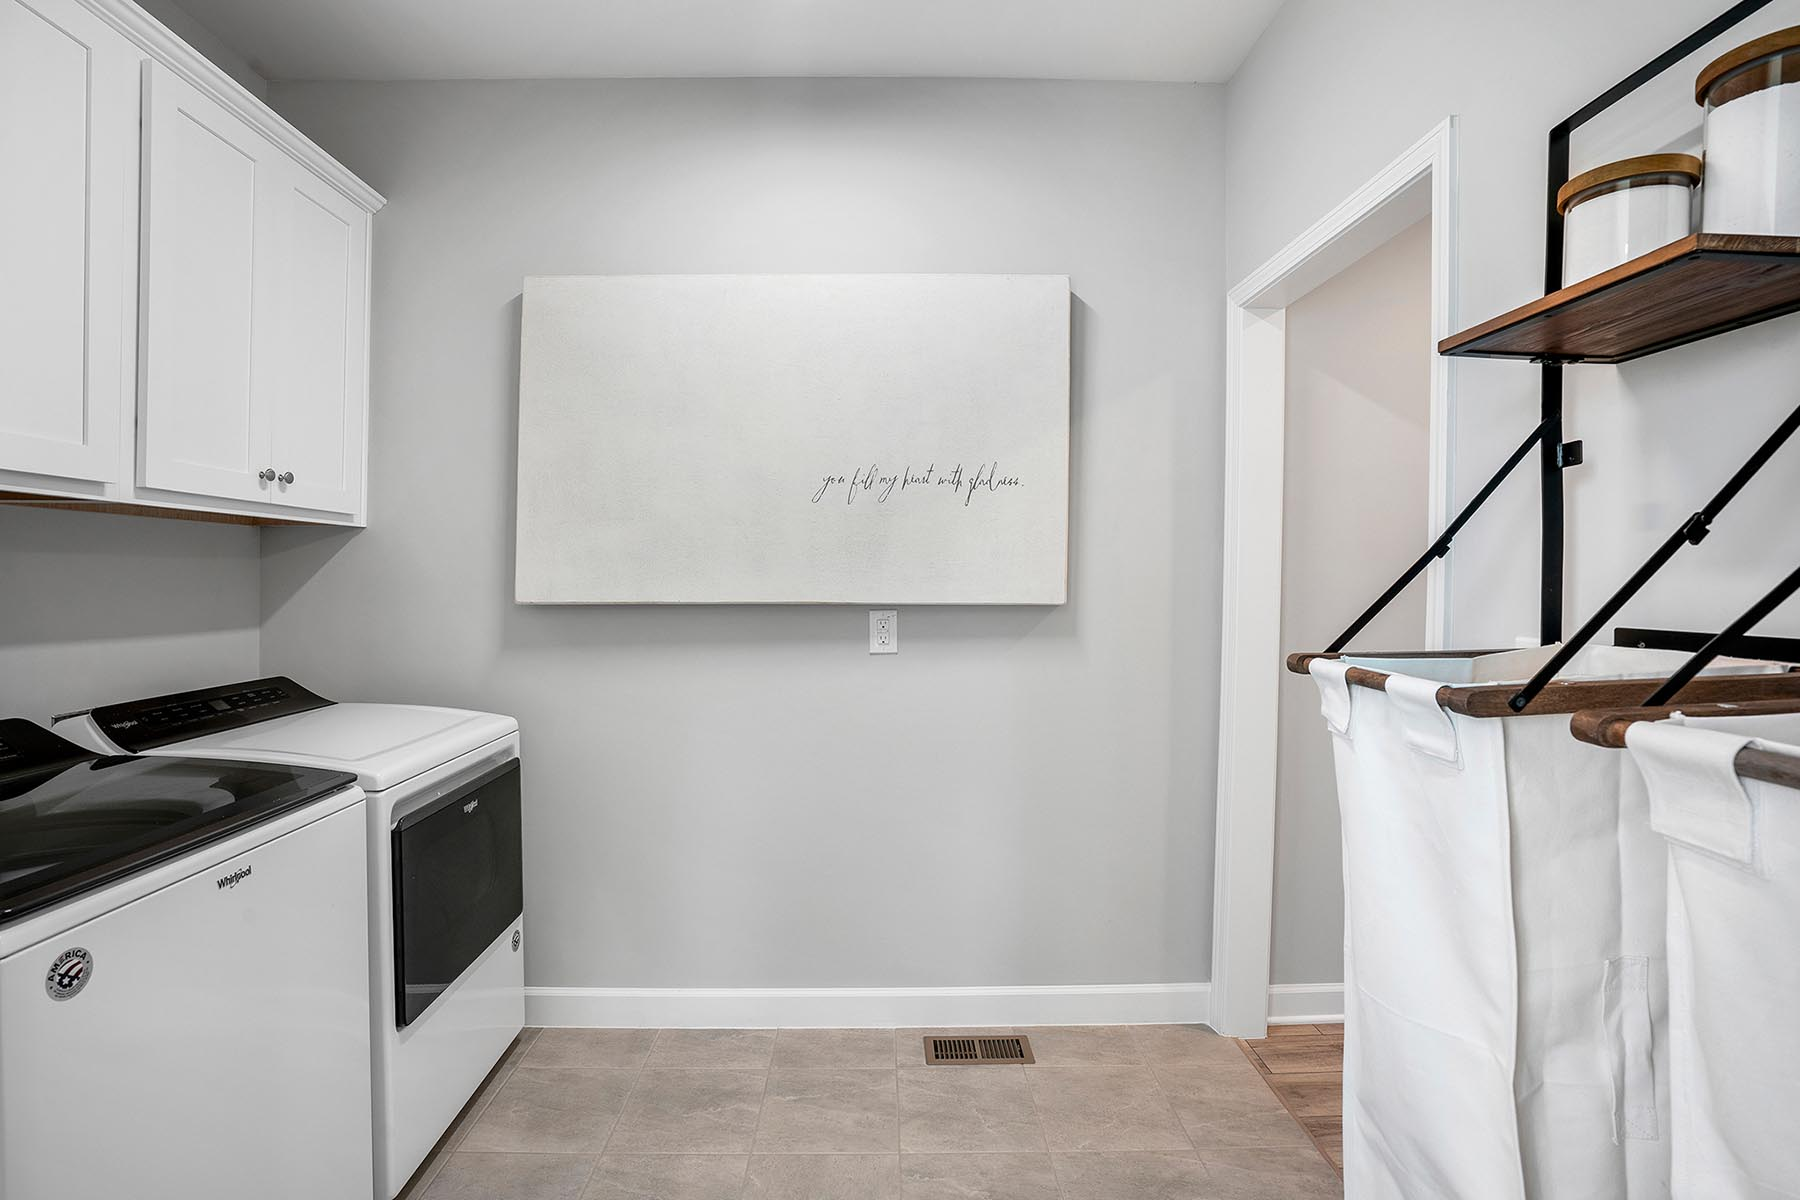 Larkin Plan Laundry at Fairview Park in Cary North Carolina by Mattamy Homes